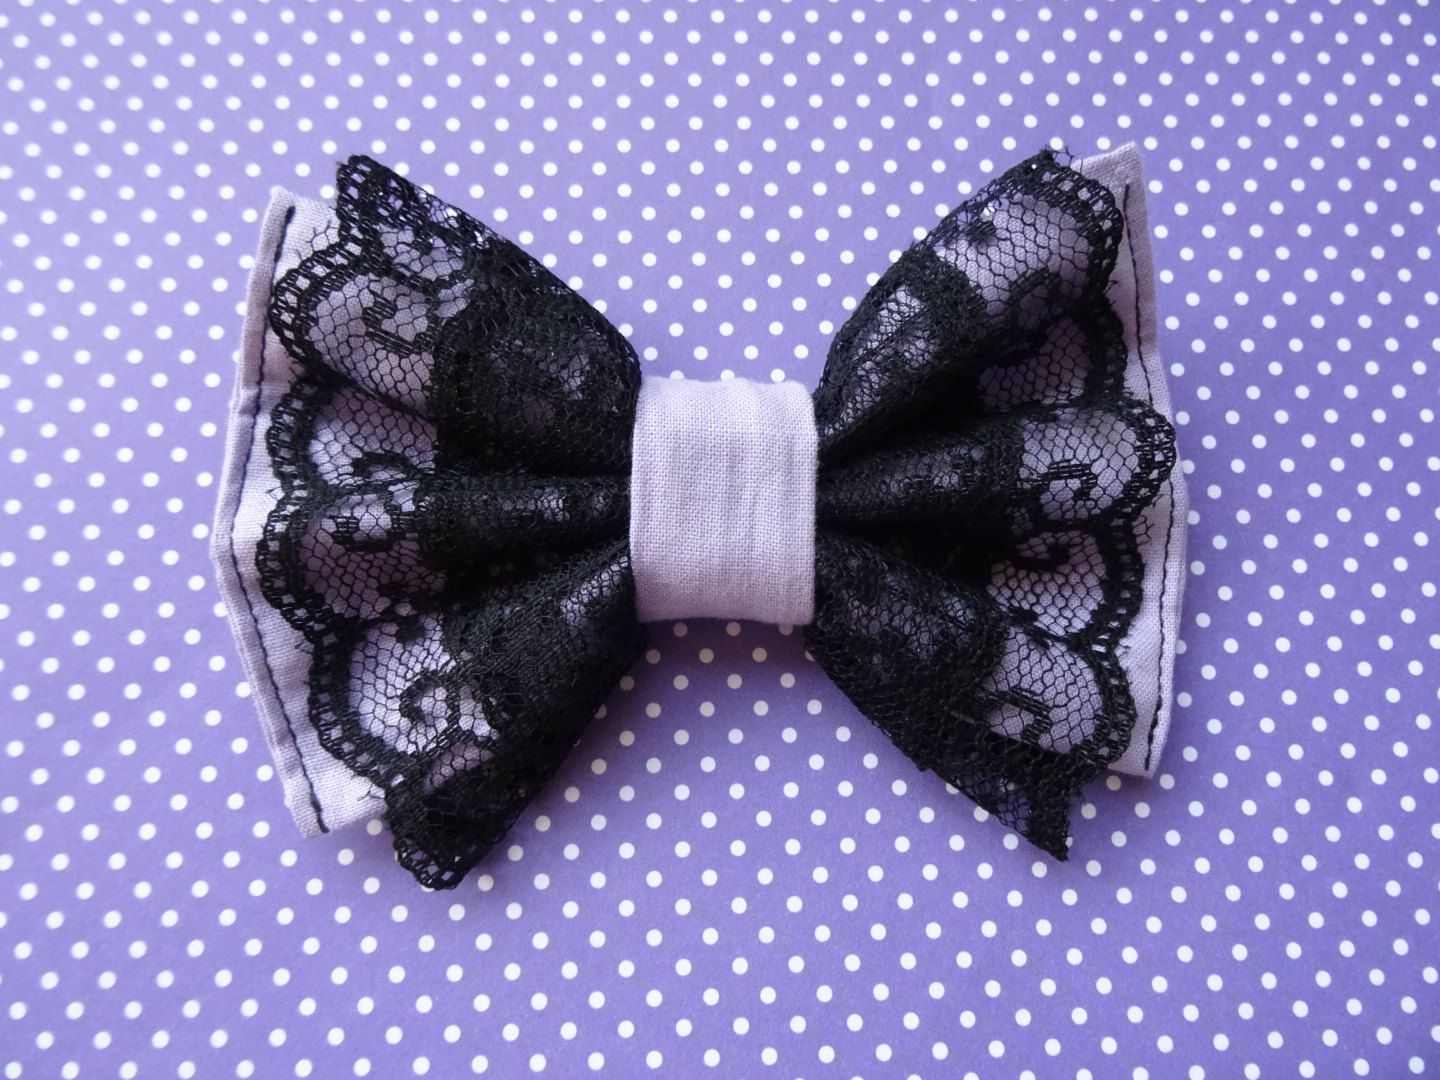 Gothic Lolita Pastel Goth Purple Black Lace Hair Bow